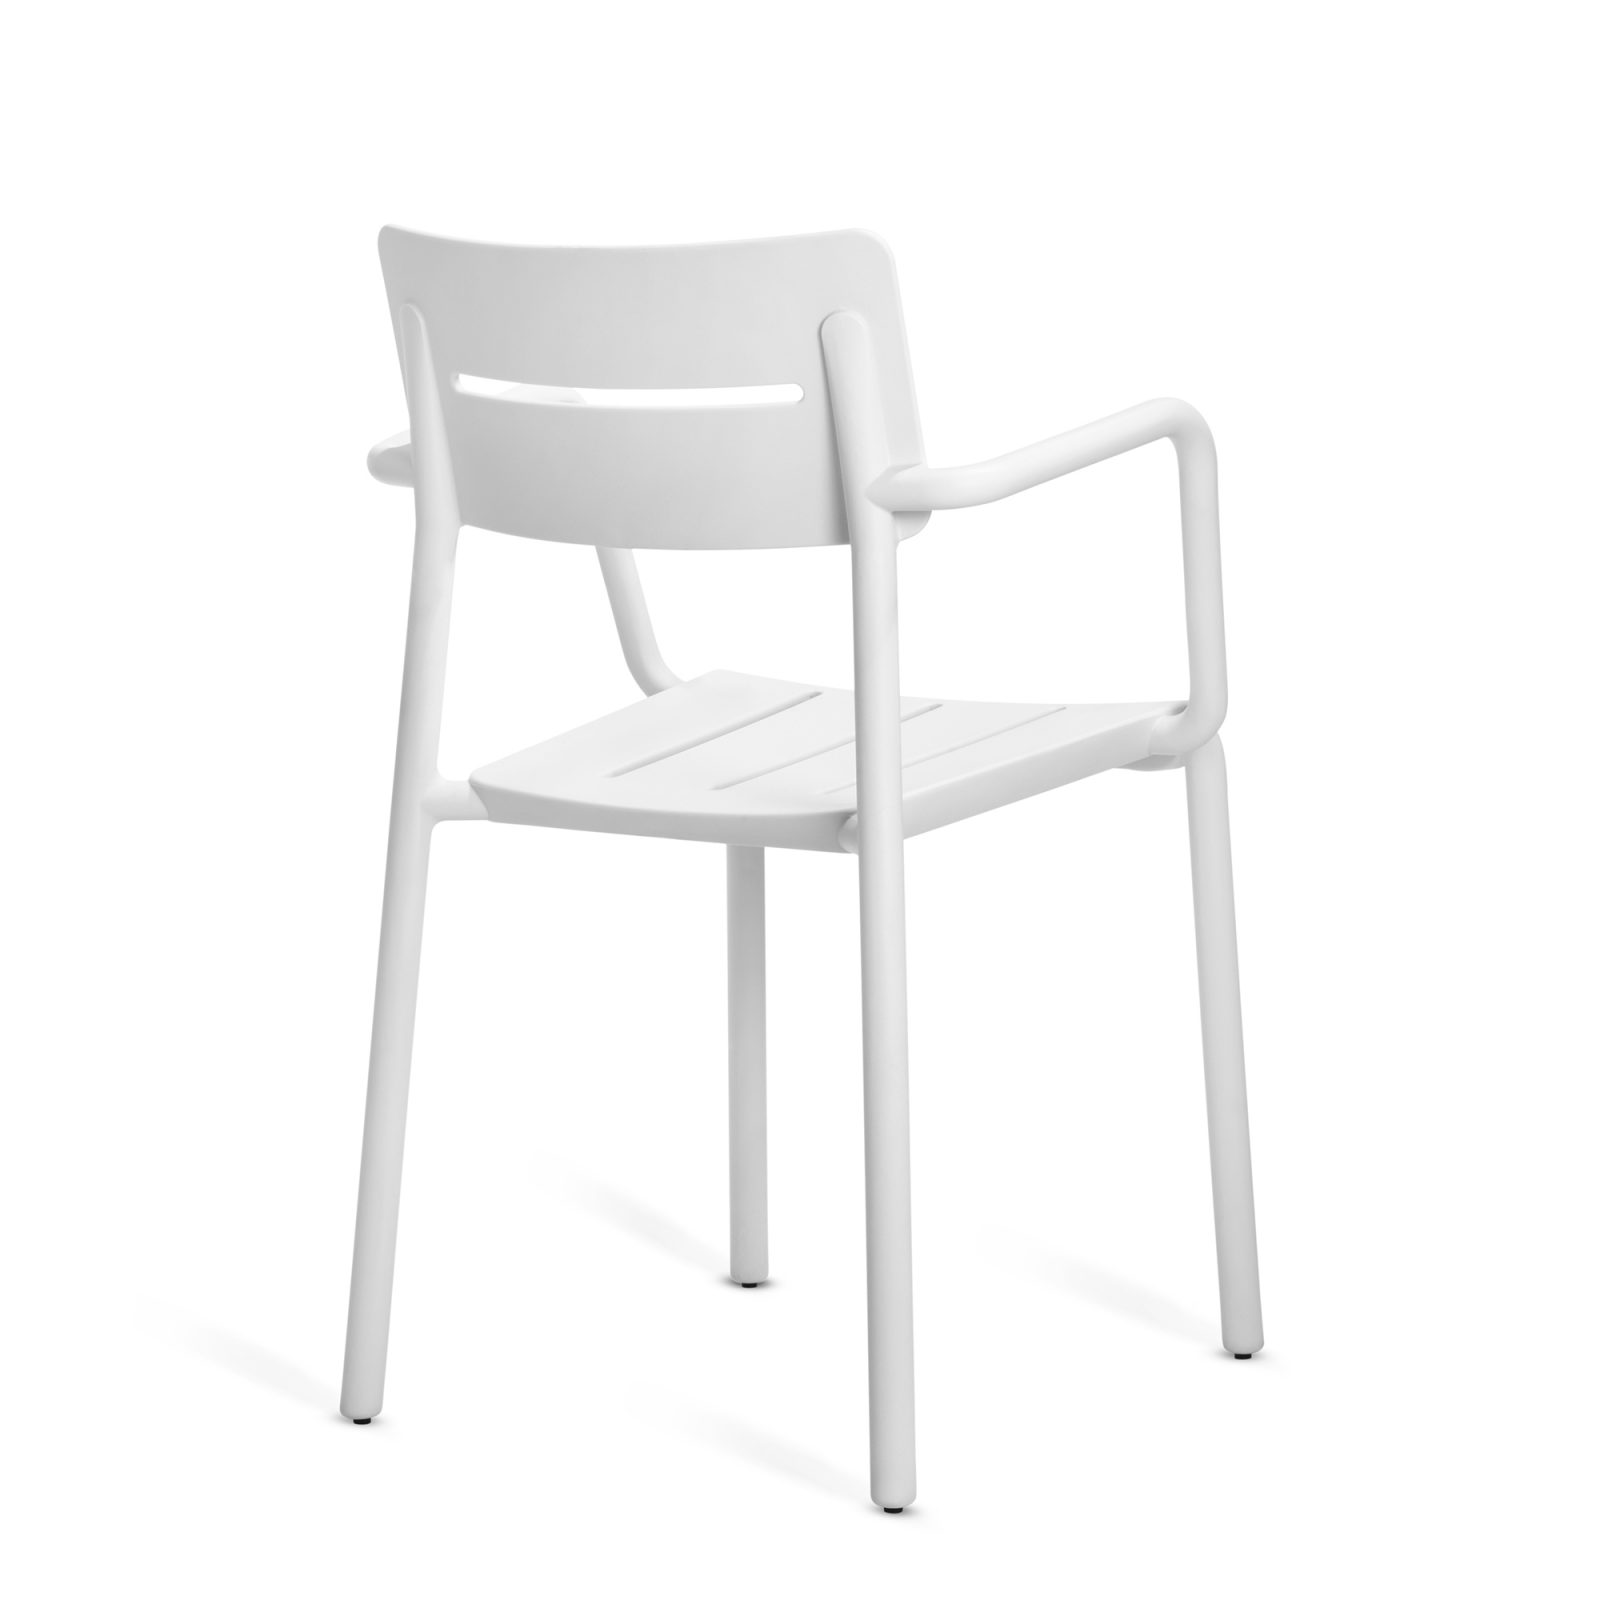 outo-armchair-11